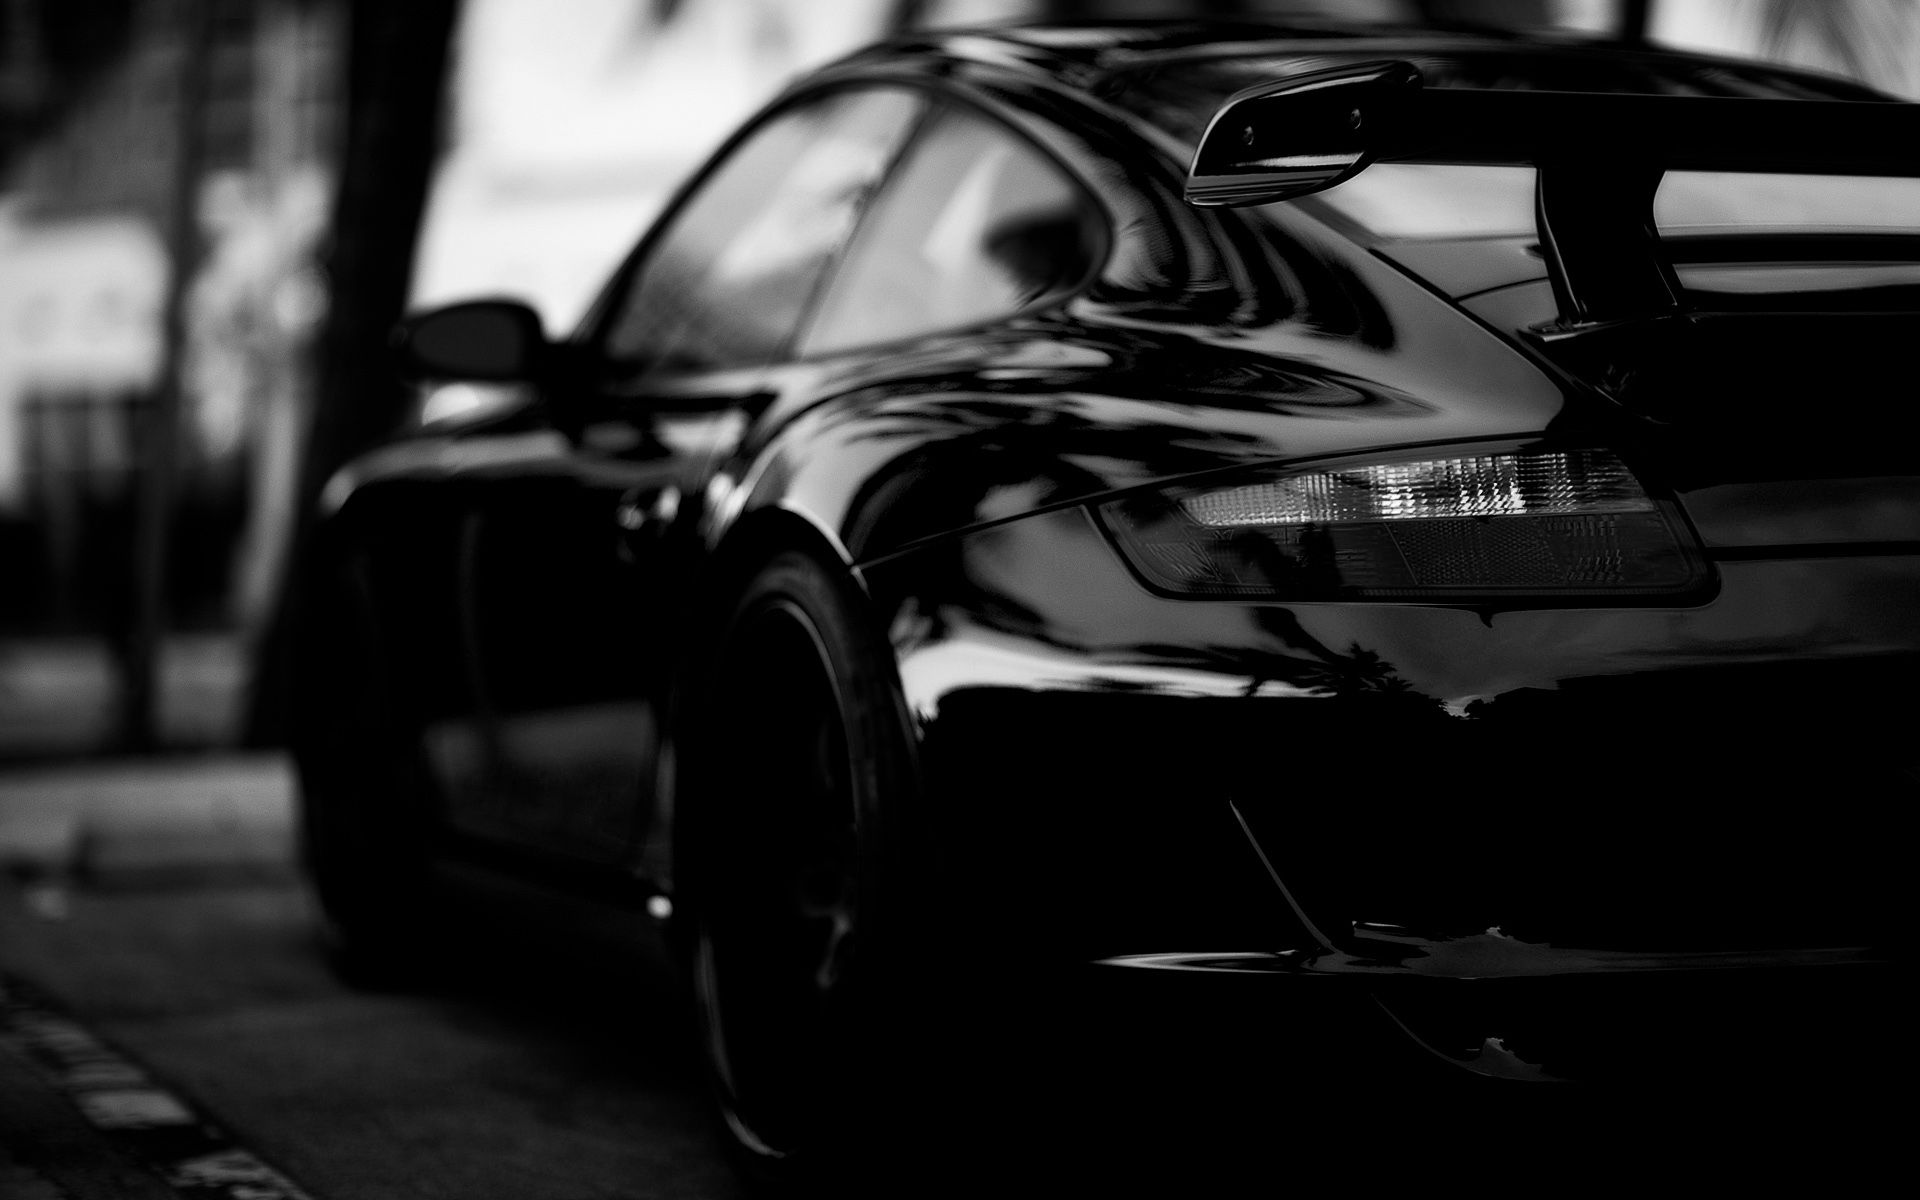 Black Edition Porsche Wallpaper New Hd Cars Wallpaper Chernye Avtomobili Avtomobil Oboi